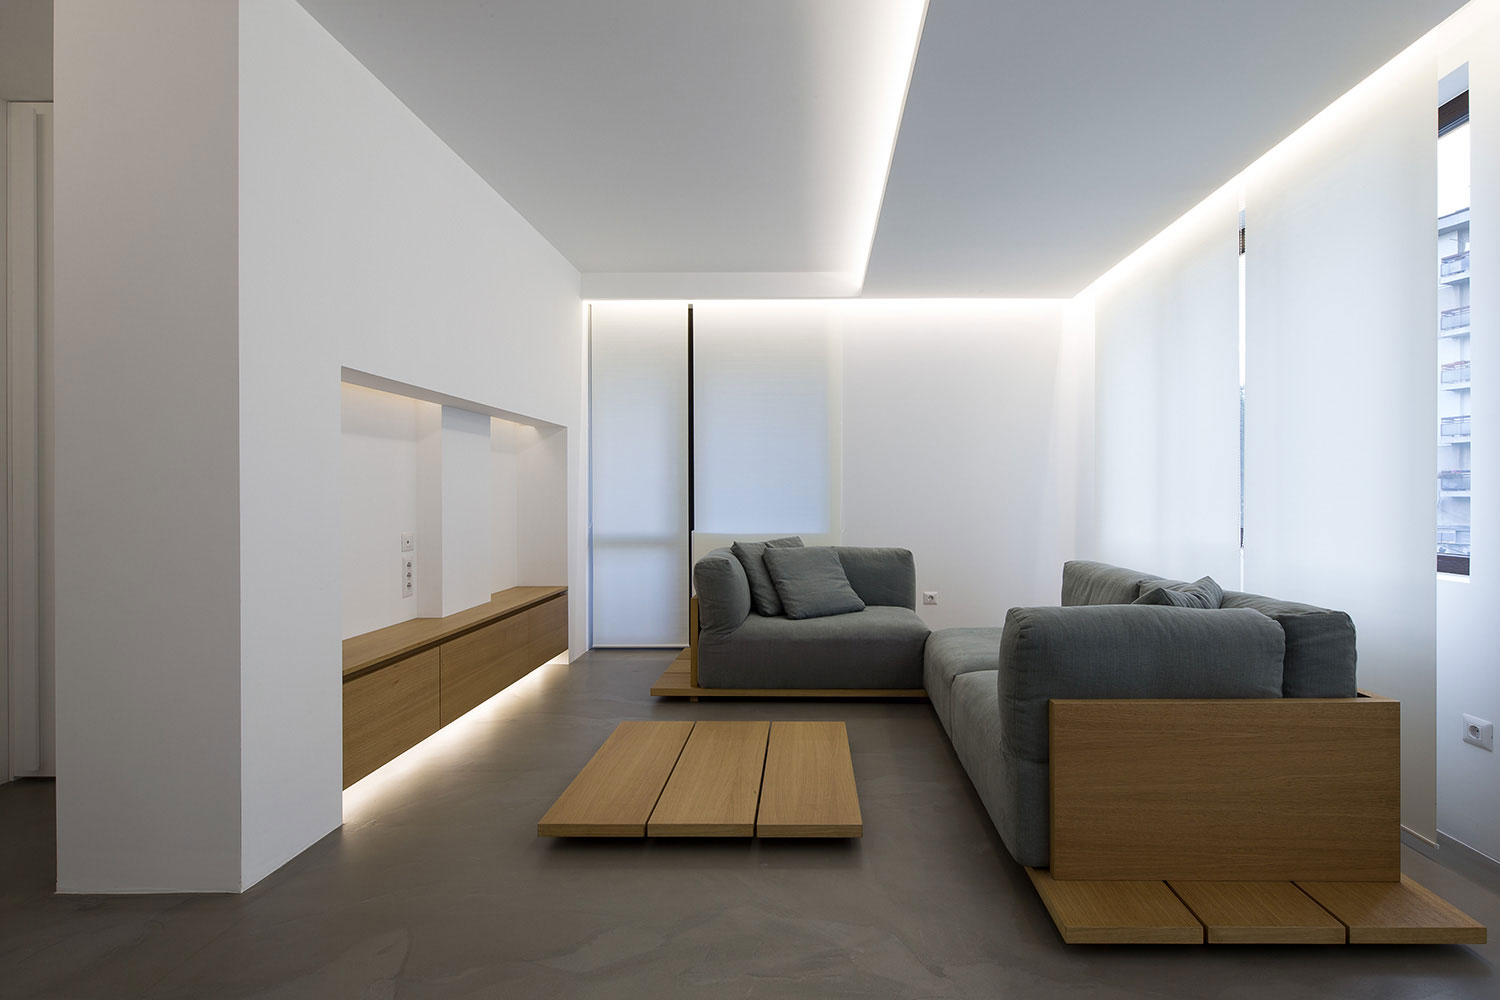 Elia nedkov designs a minimalist interior in sofia bulgaria Modern apartment interior design